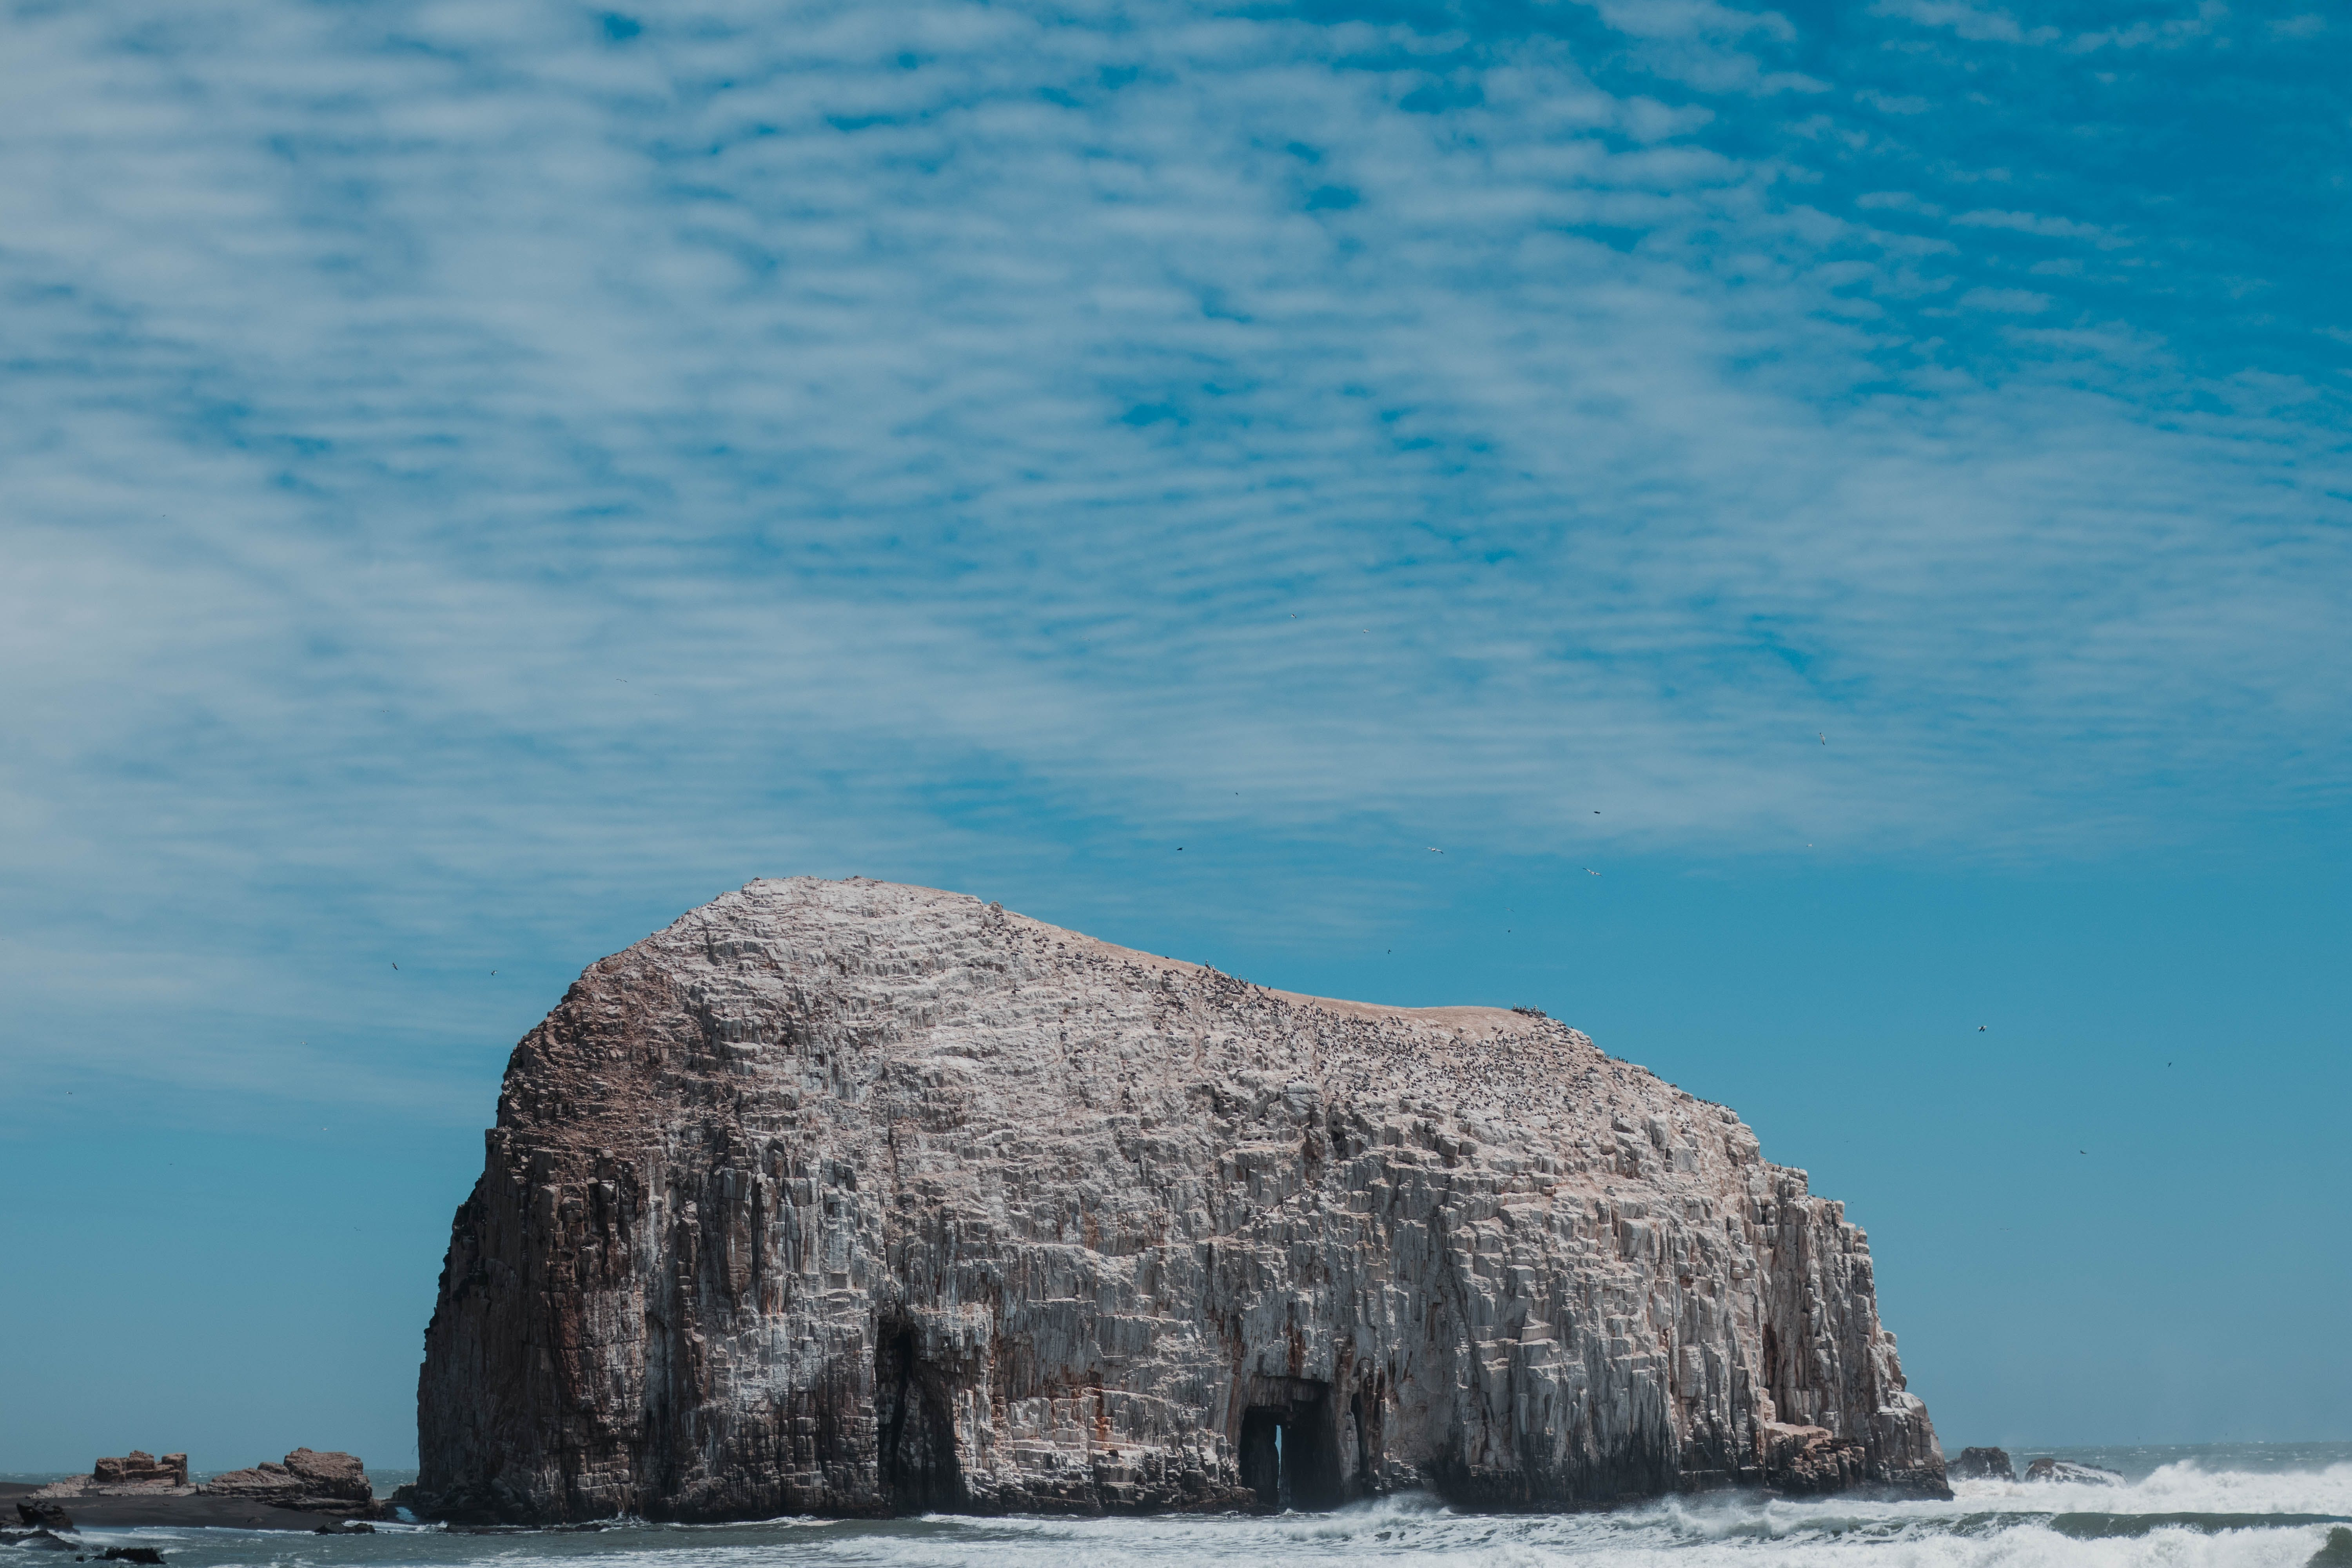 Gray Rock Formation on Beach Under Blue Sky